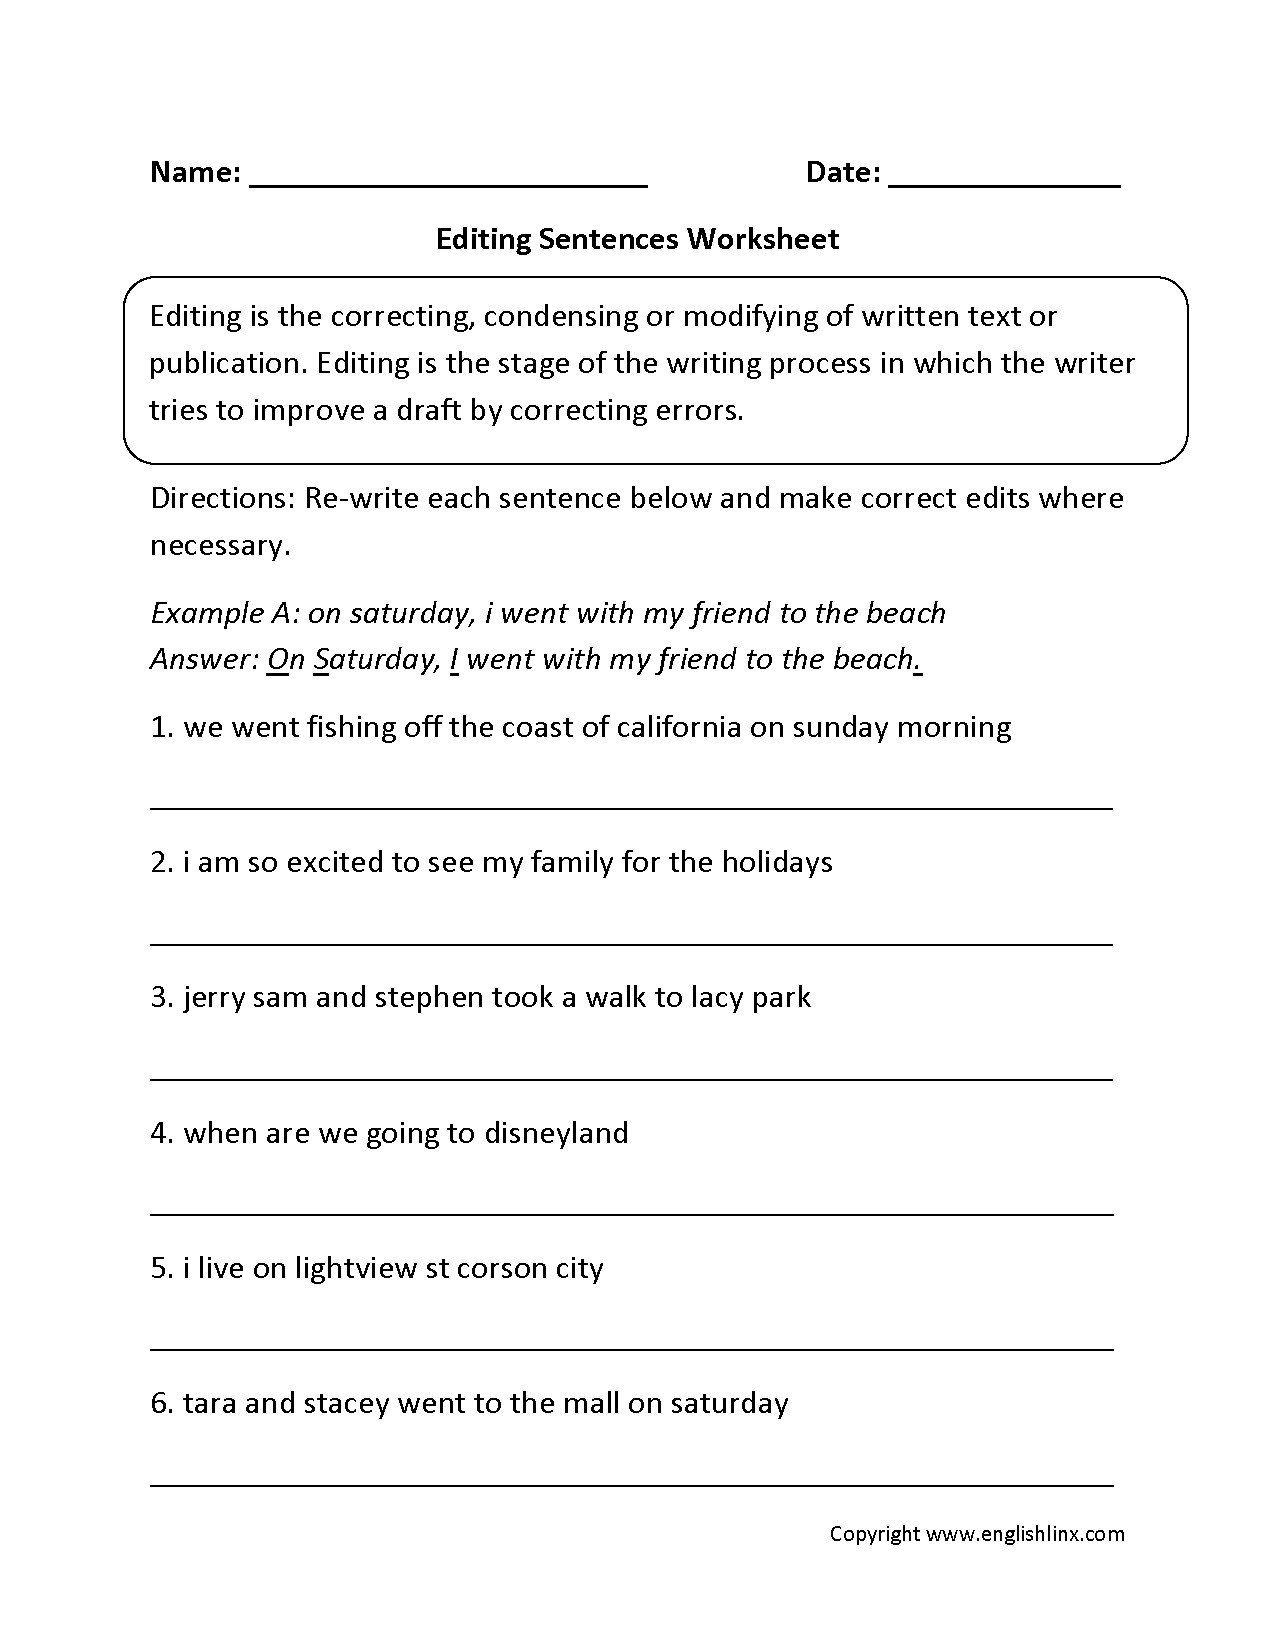 3rd Grade Editing Worksheets Editing Worksheet Sentece